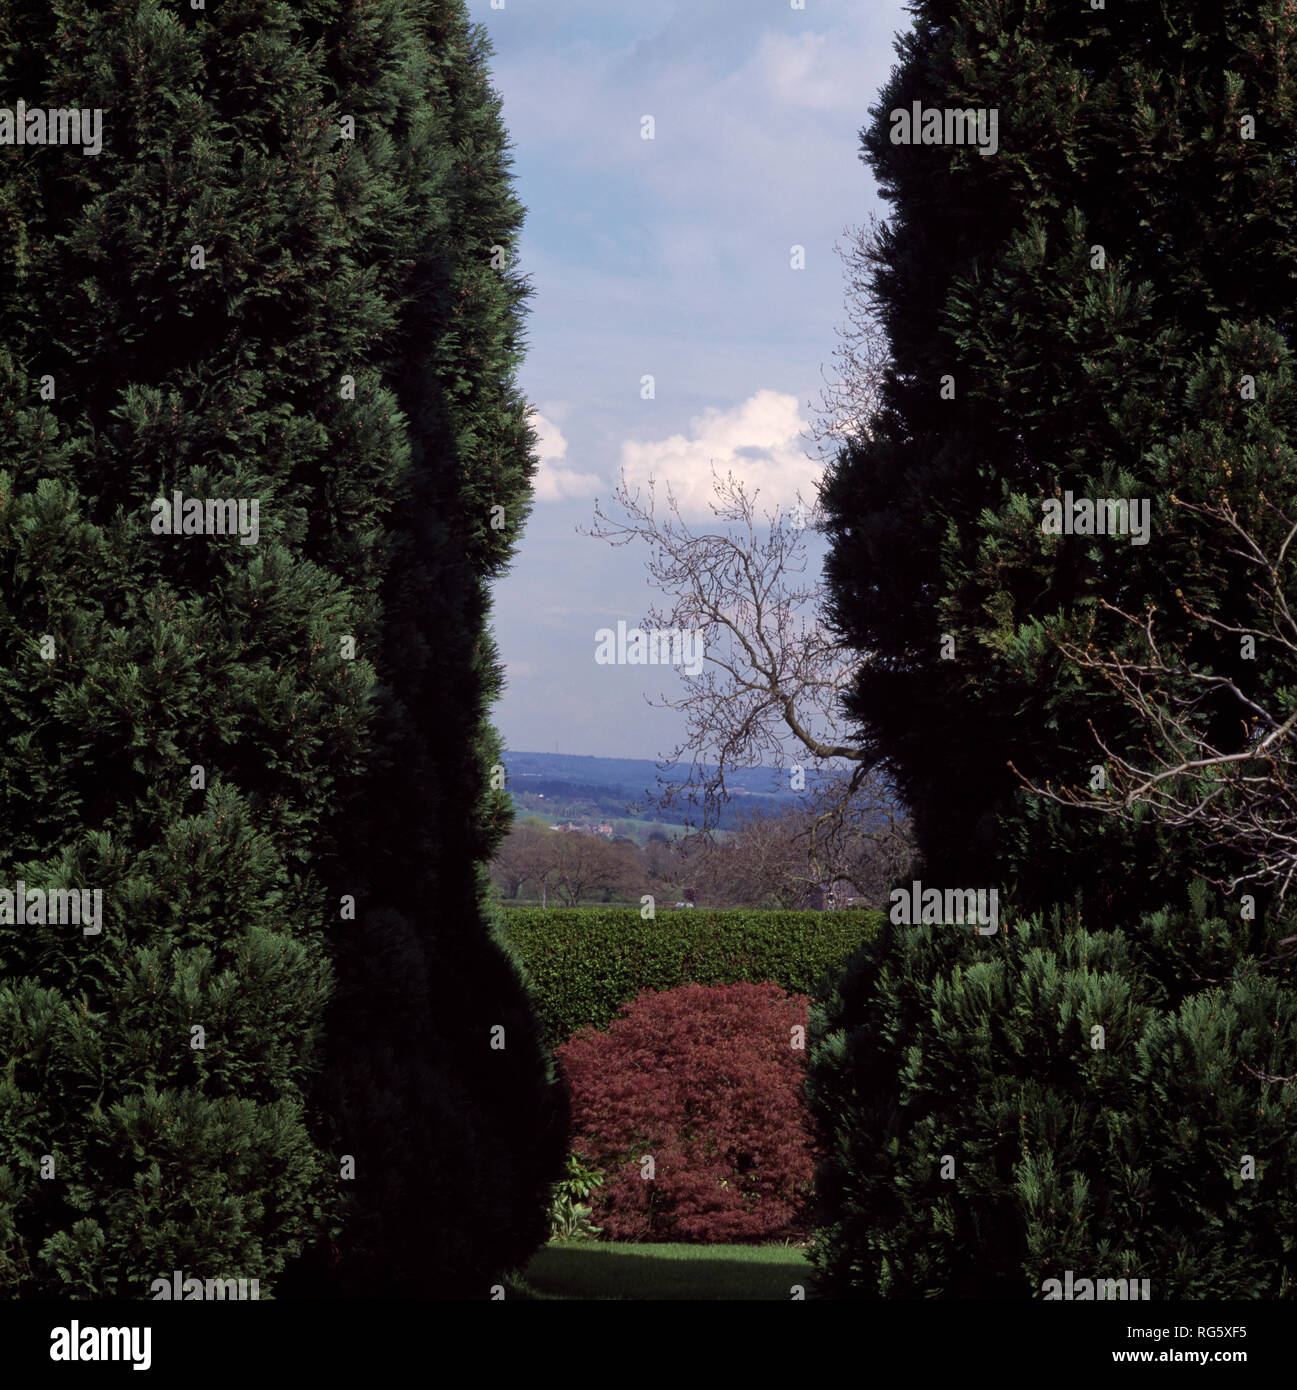 View through tall conifers of the English countryside - Stock Image